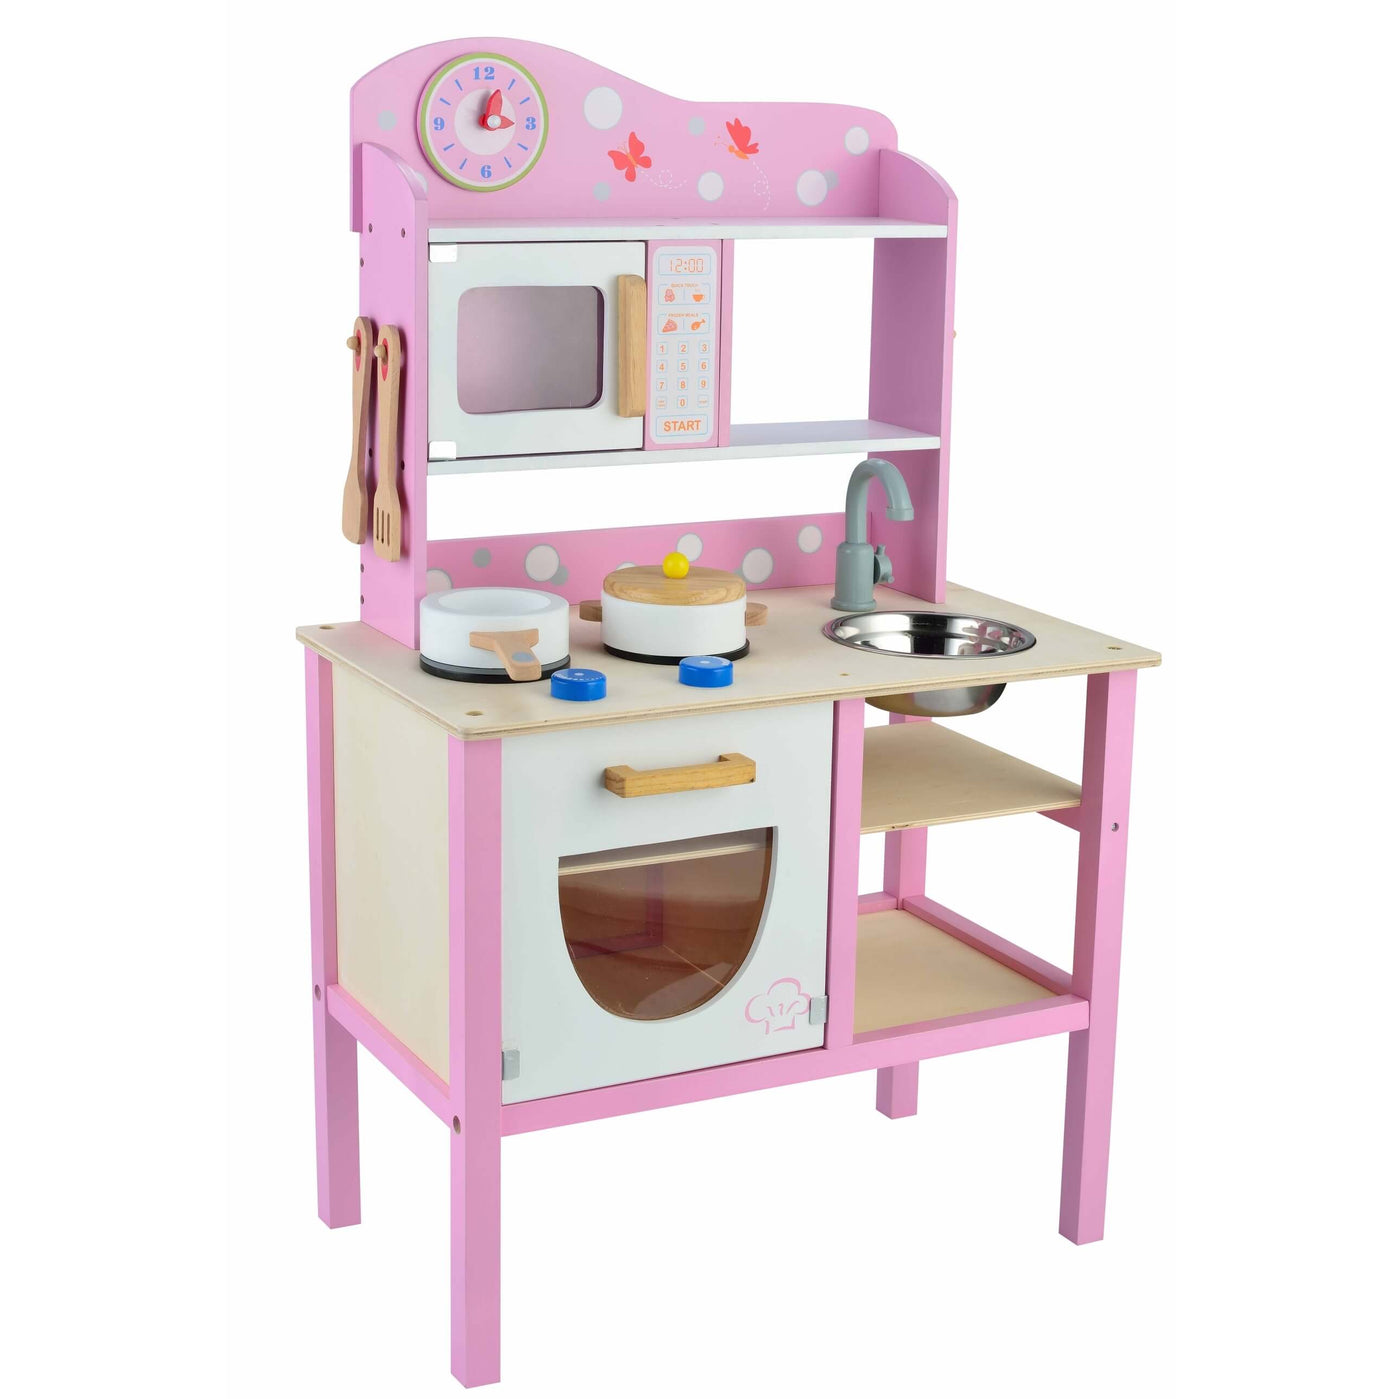 Kitchen Oven Kids Baker Play Cooking Easy Set